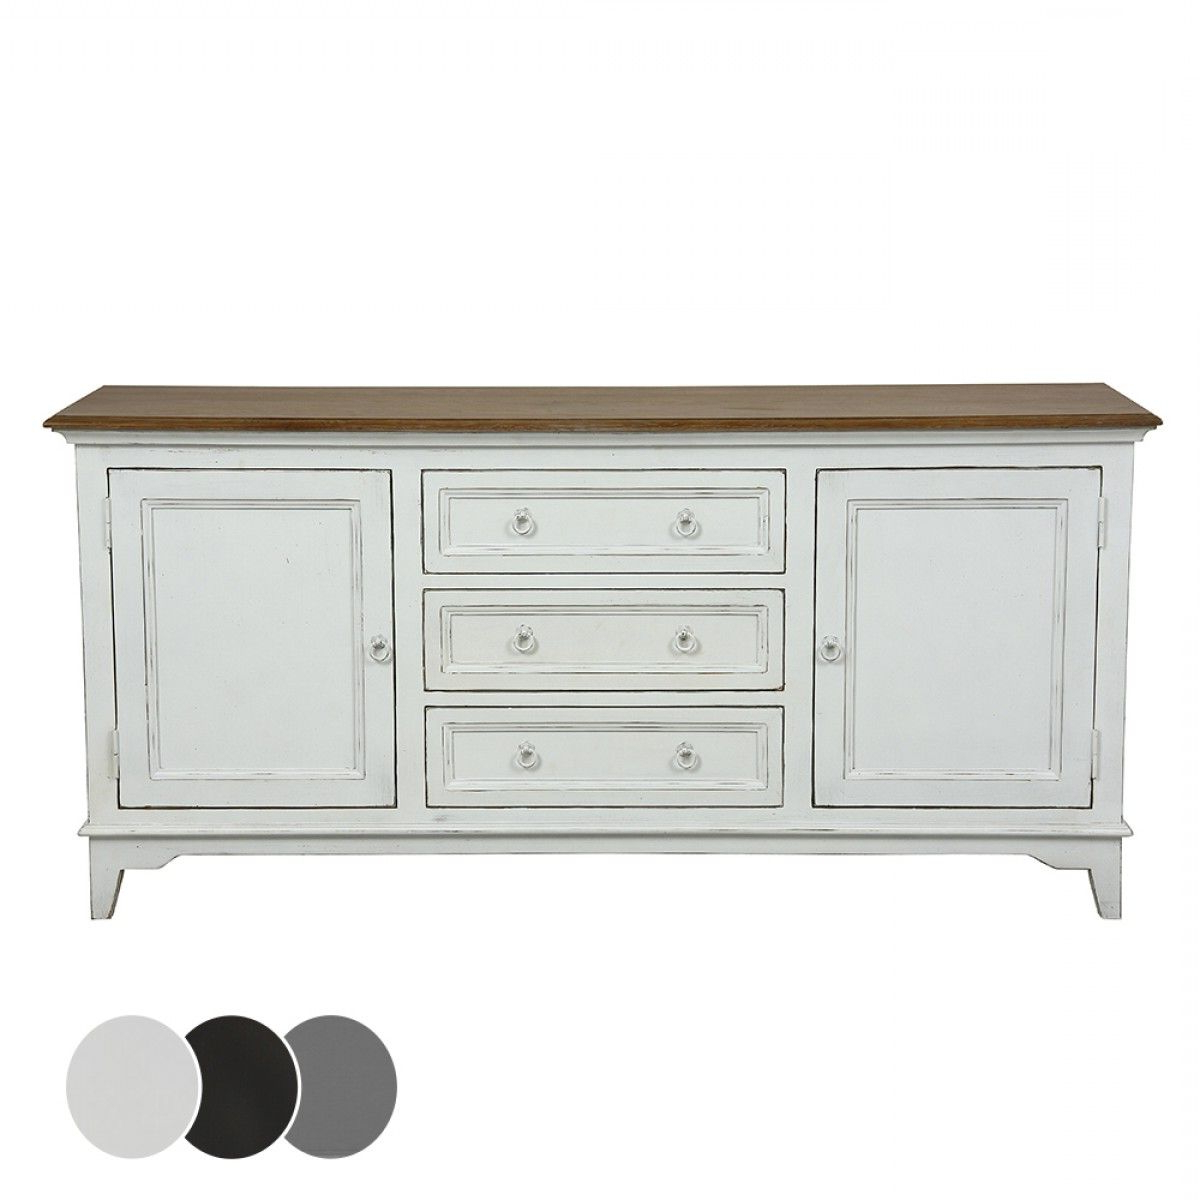 4 Door 3 Drawer White Wash Sideboards Within Most Up To Date Esquisse 2 Door 3 Drawer Sideboard – Black – Buffets & Sideboards (View 6 of 20)